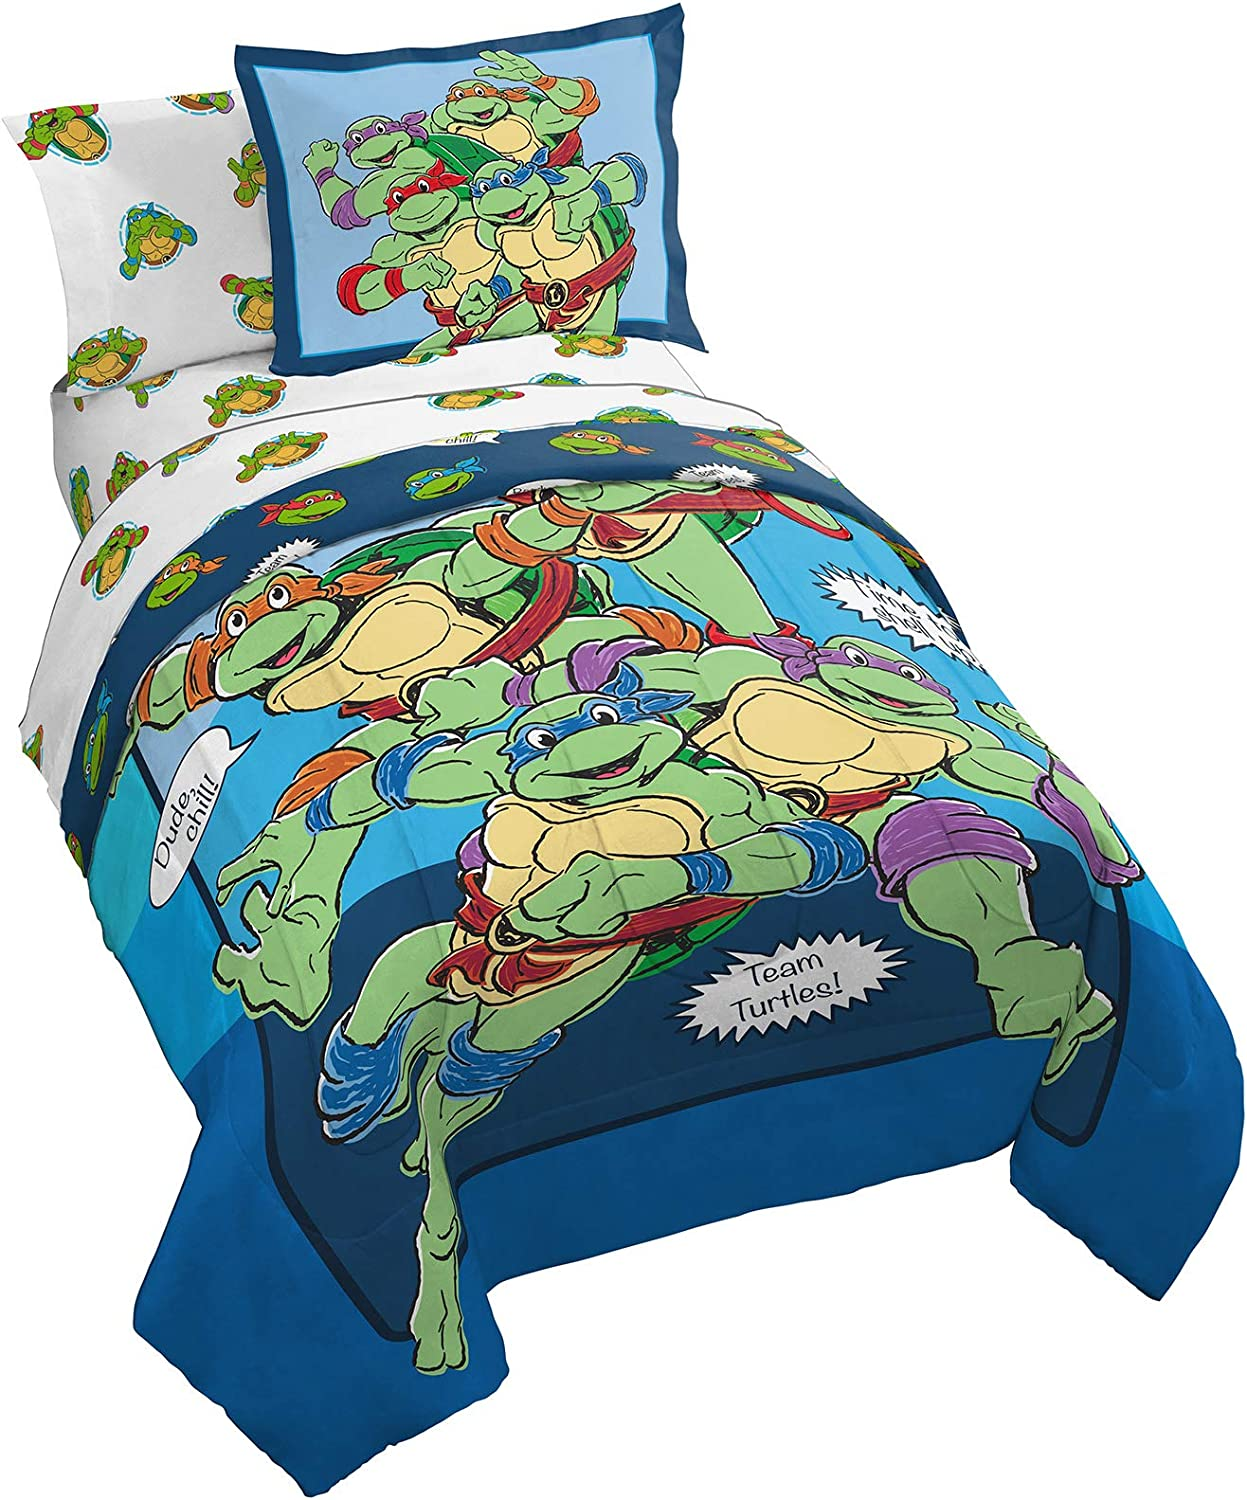 Nickelodeon Teenage Mutant Ninja Turtles Ready To Roll 7 Piece Full Bed Set - Includes Reversible Comforter & Sheet Set Bedding - Super Soft Fade Resistant Microfiber (Official Nickelodeon Product)